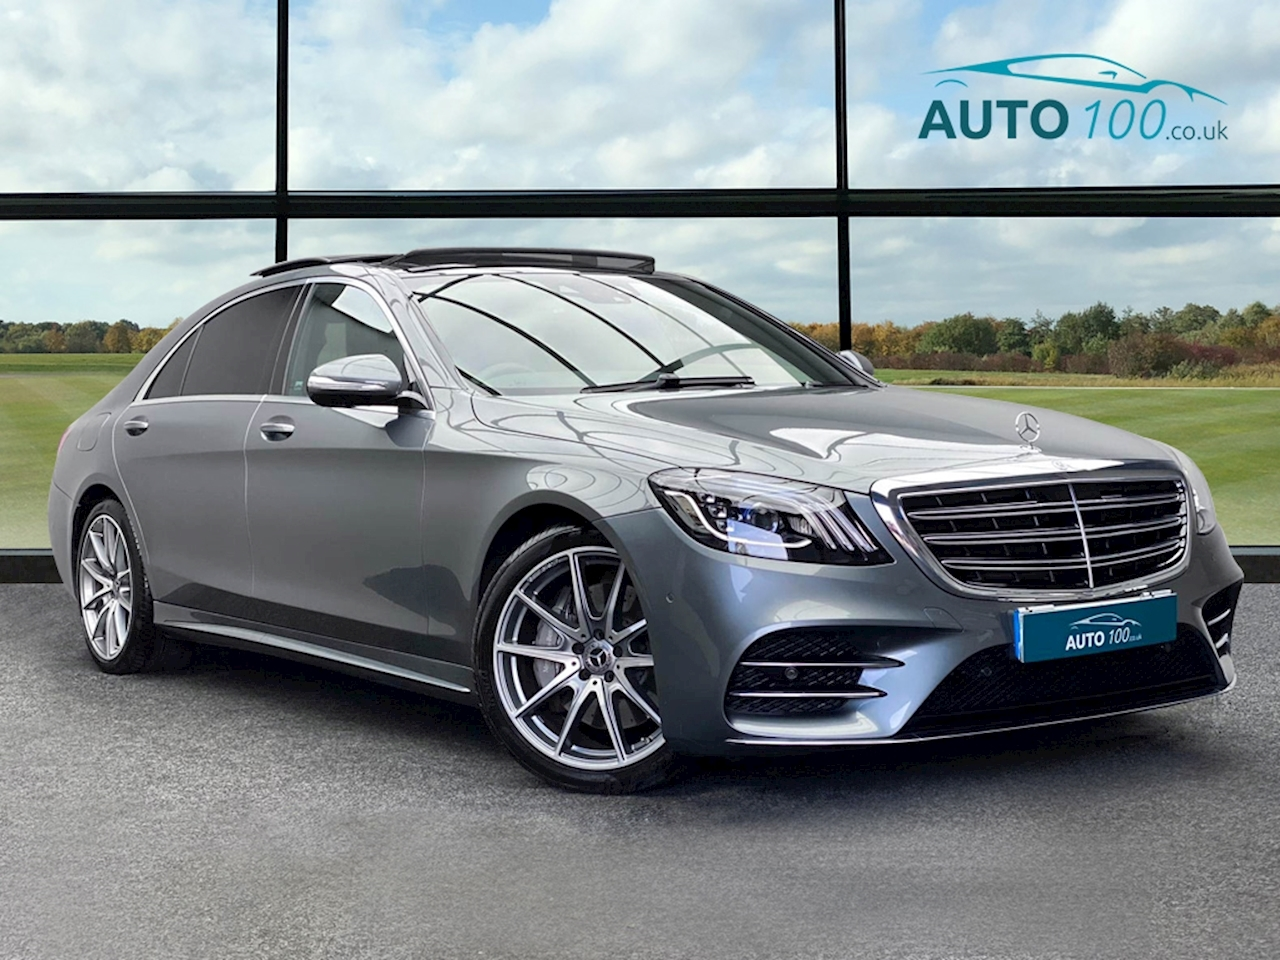 Mercedes-Benz S Class AMG Line Saloon 3.0 G-Tronic+ Diesel